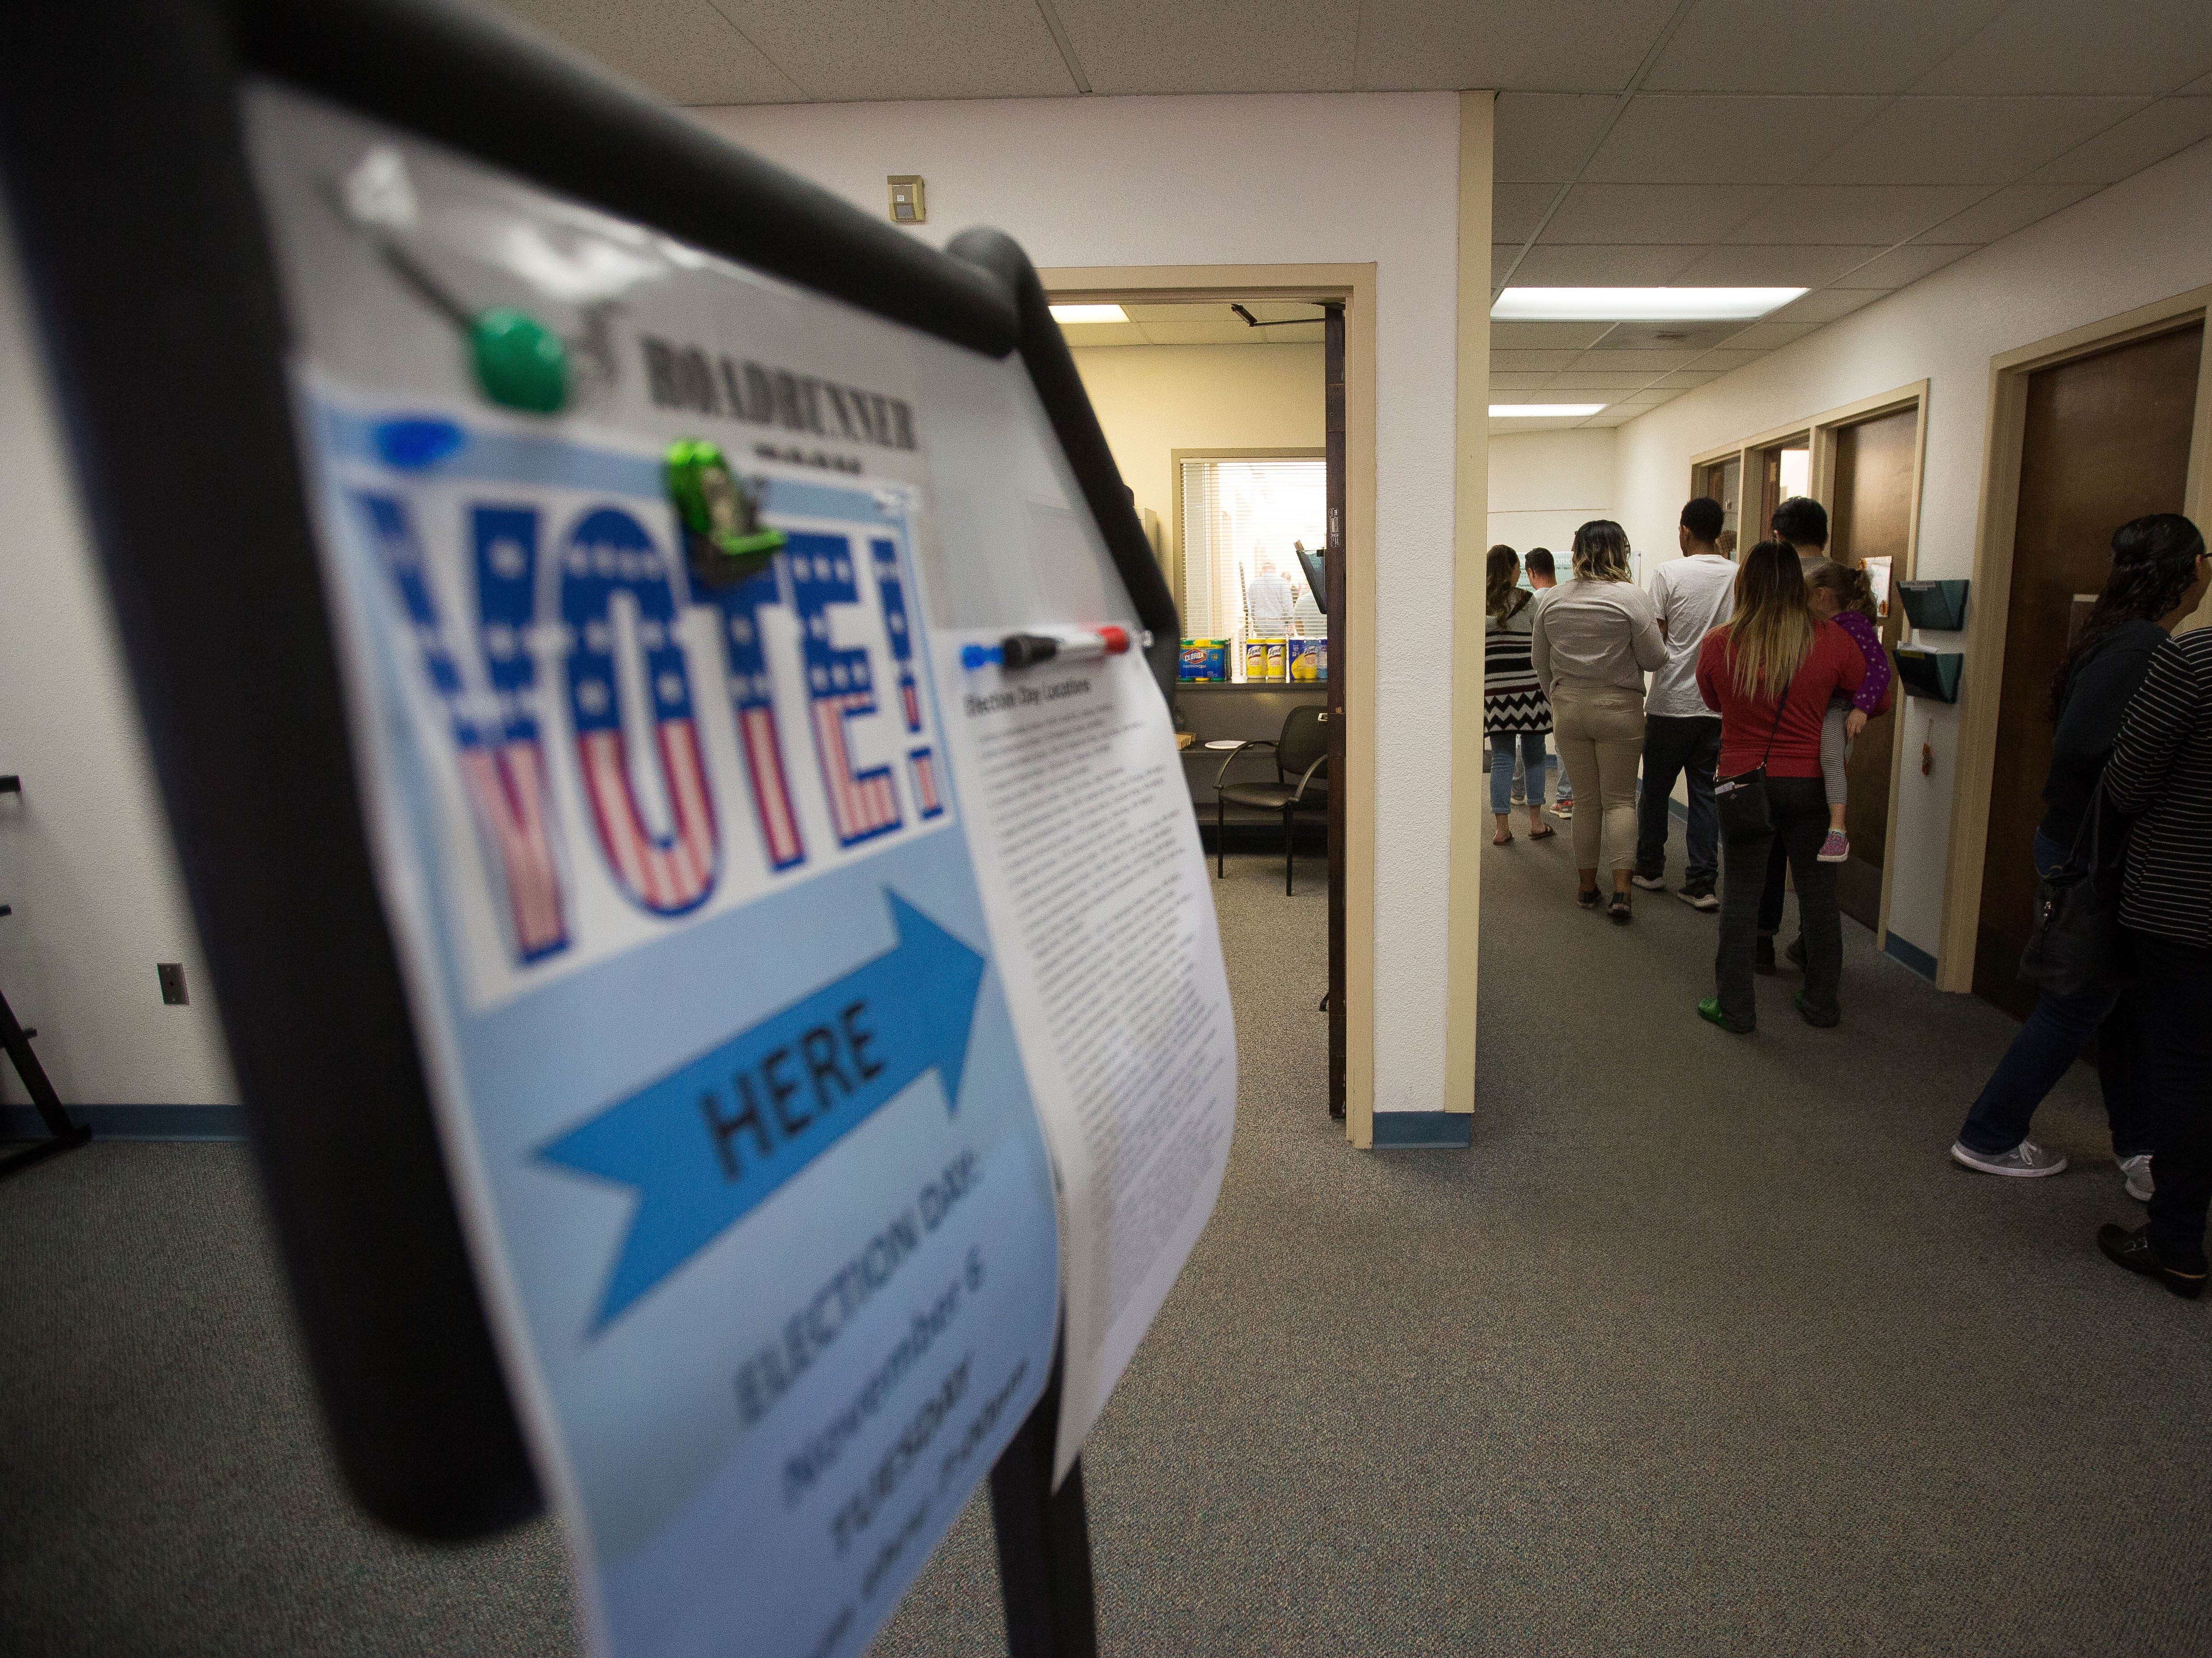 Voters line up on the second floor of Thomas Branigan Library, Tuesday November 6, 2018 to cast a ballot in the midterm elections.